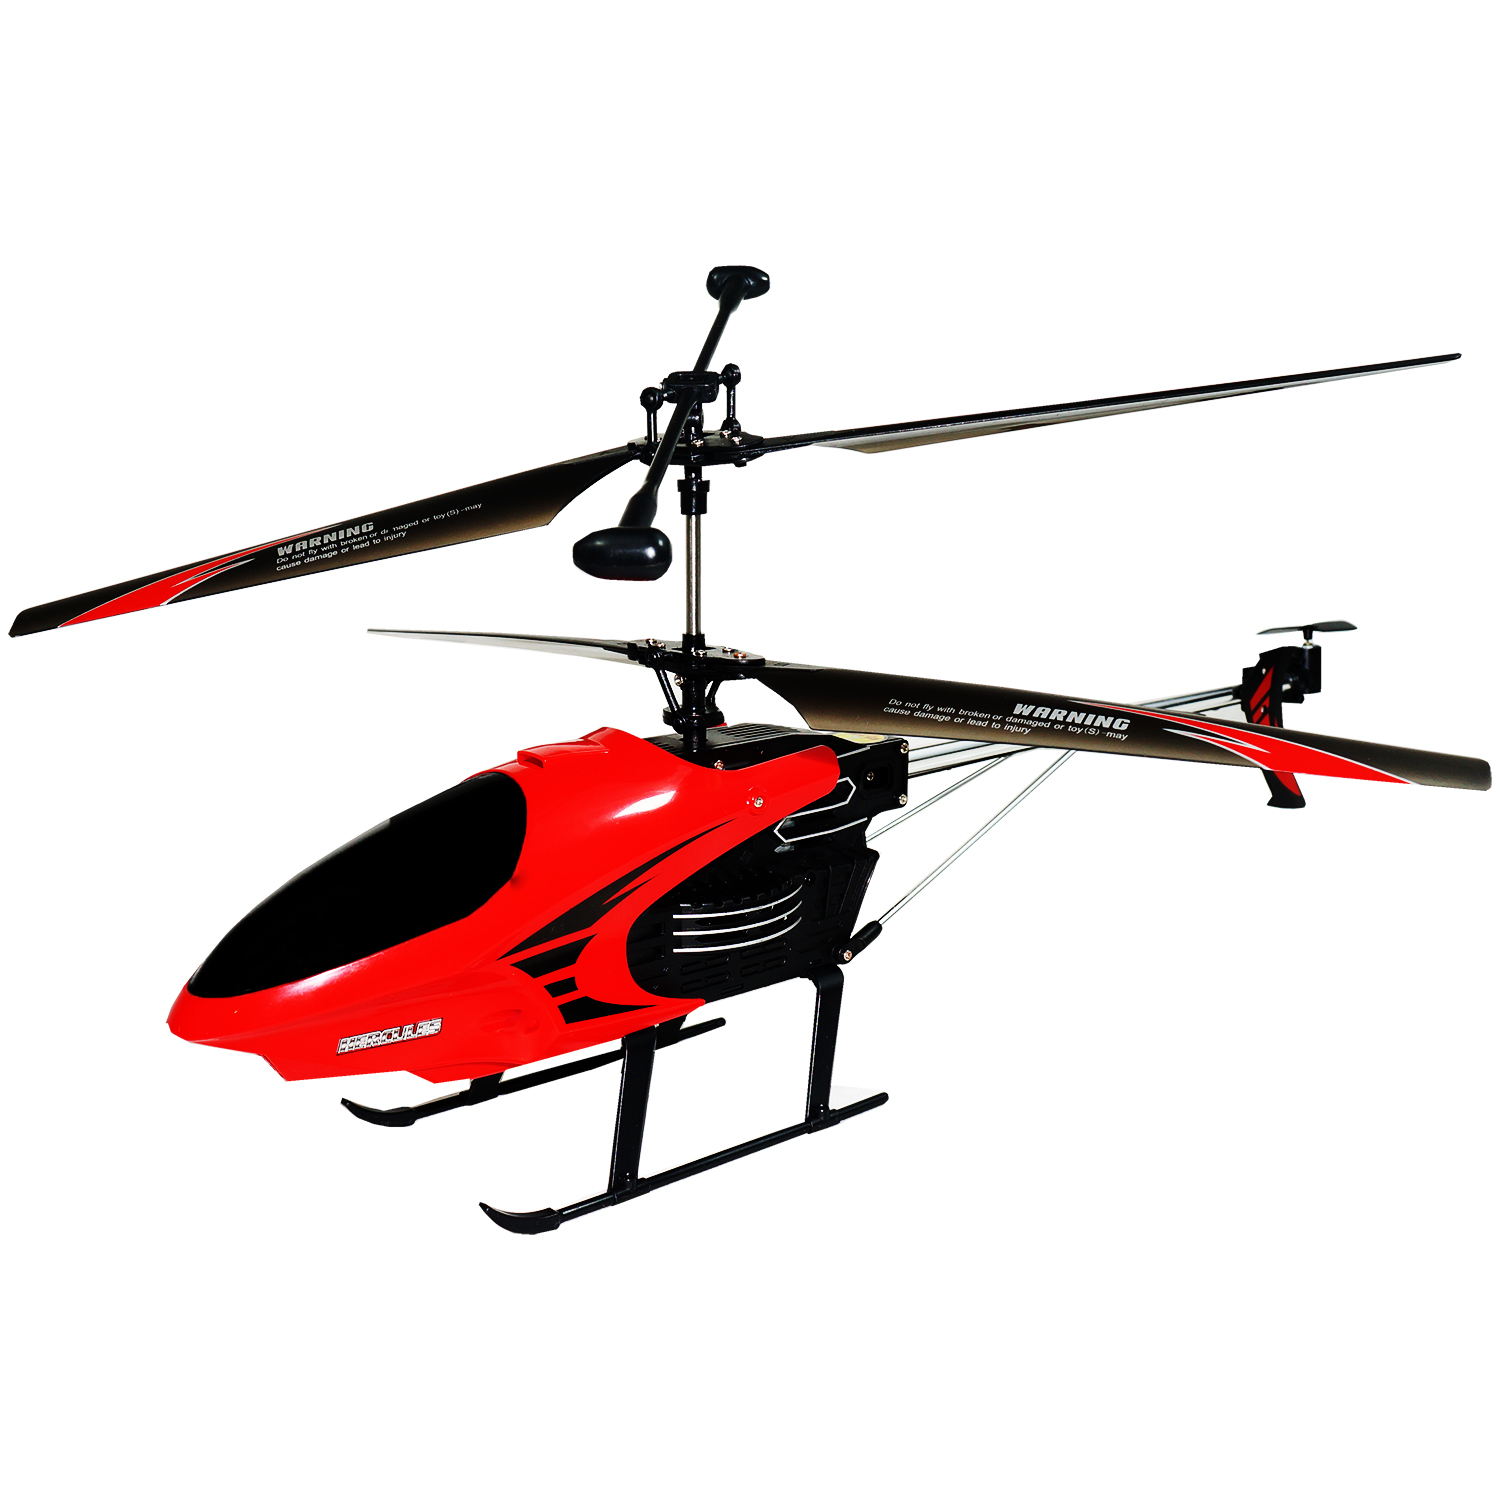 hercules unbreakable rc helicopter with 371203534345 on Hercules Unbreakable 3 5ch Rc Helicopter Mpn 35850 besides ProphetSport35WPeakNiMHBatteryCharger further MissileStormHeliReplacementRCHelicopterPartsSet in addition Product likewise HerculesReplacementRotorTailFinBlue.